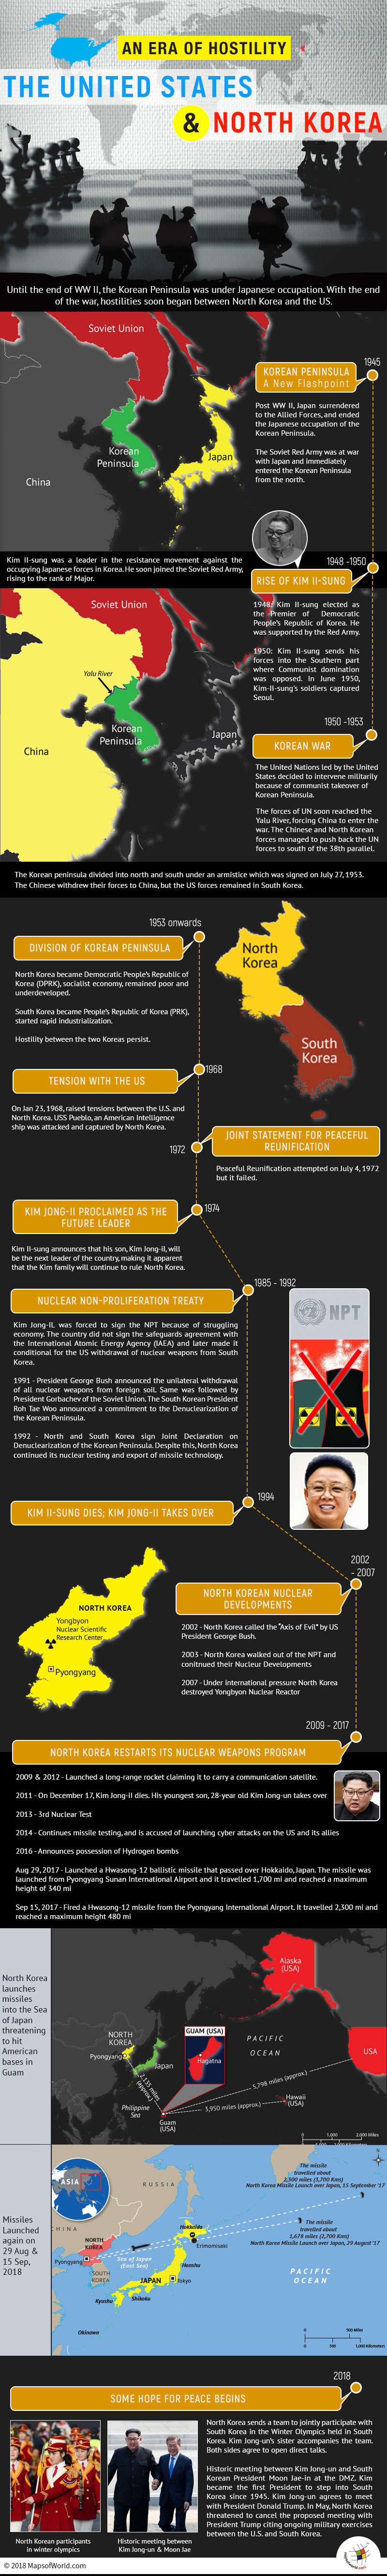 Infographic - US and North Korea relations